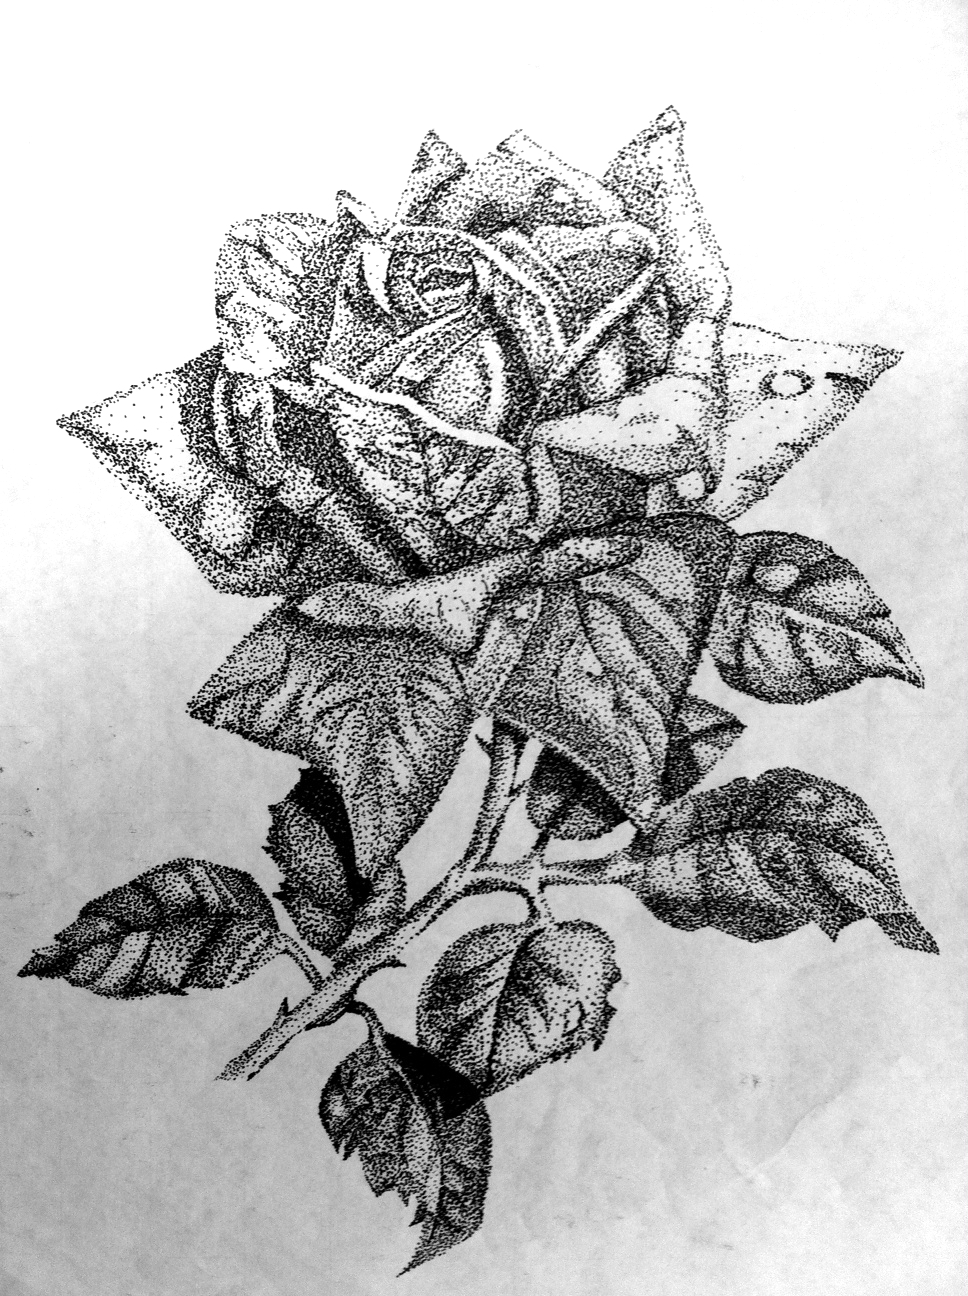 Drawn rose marker Rose Artwork: Drawing Original Smith